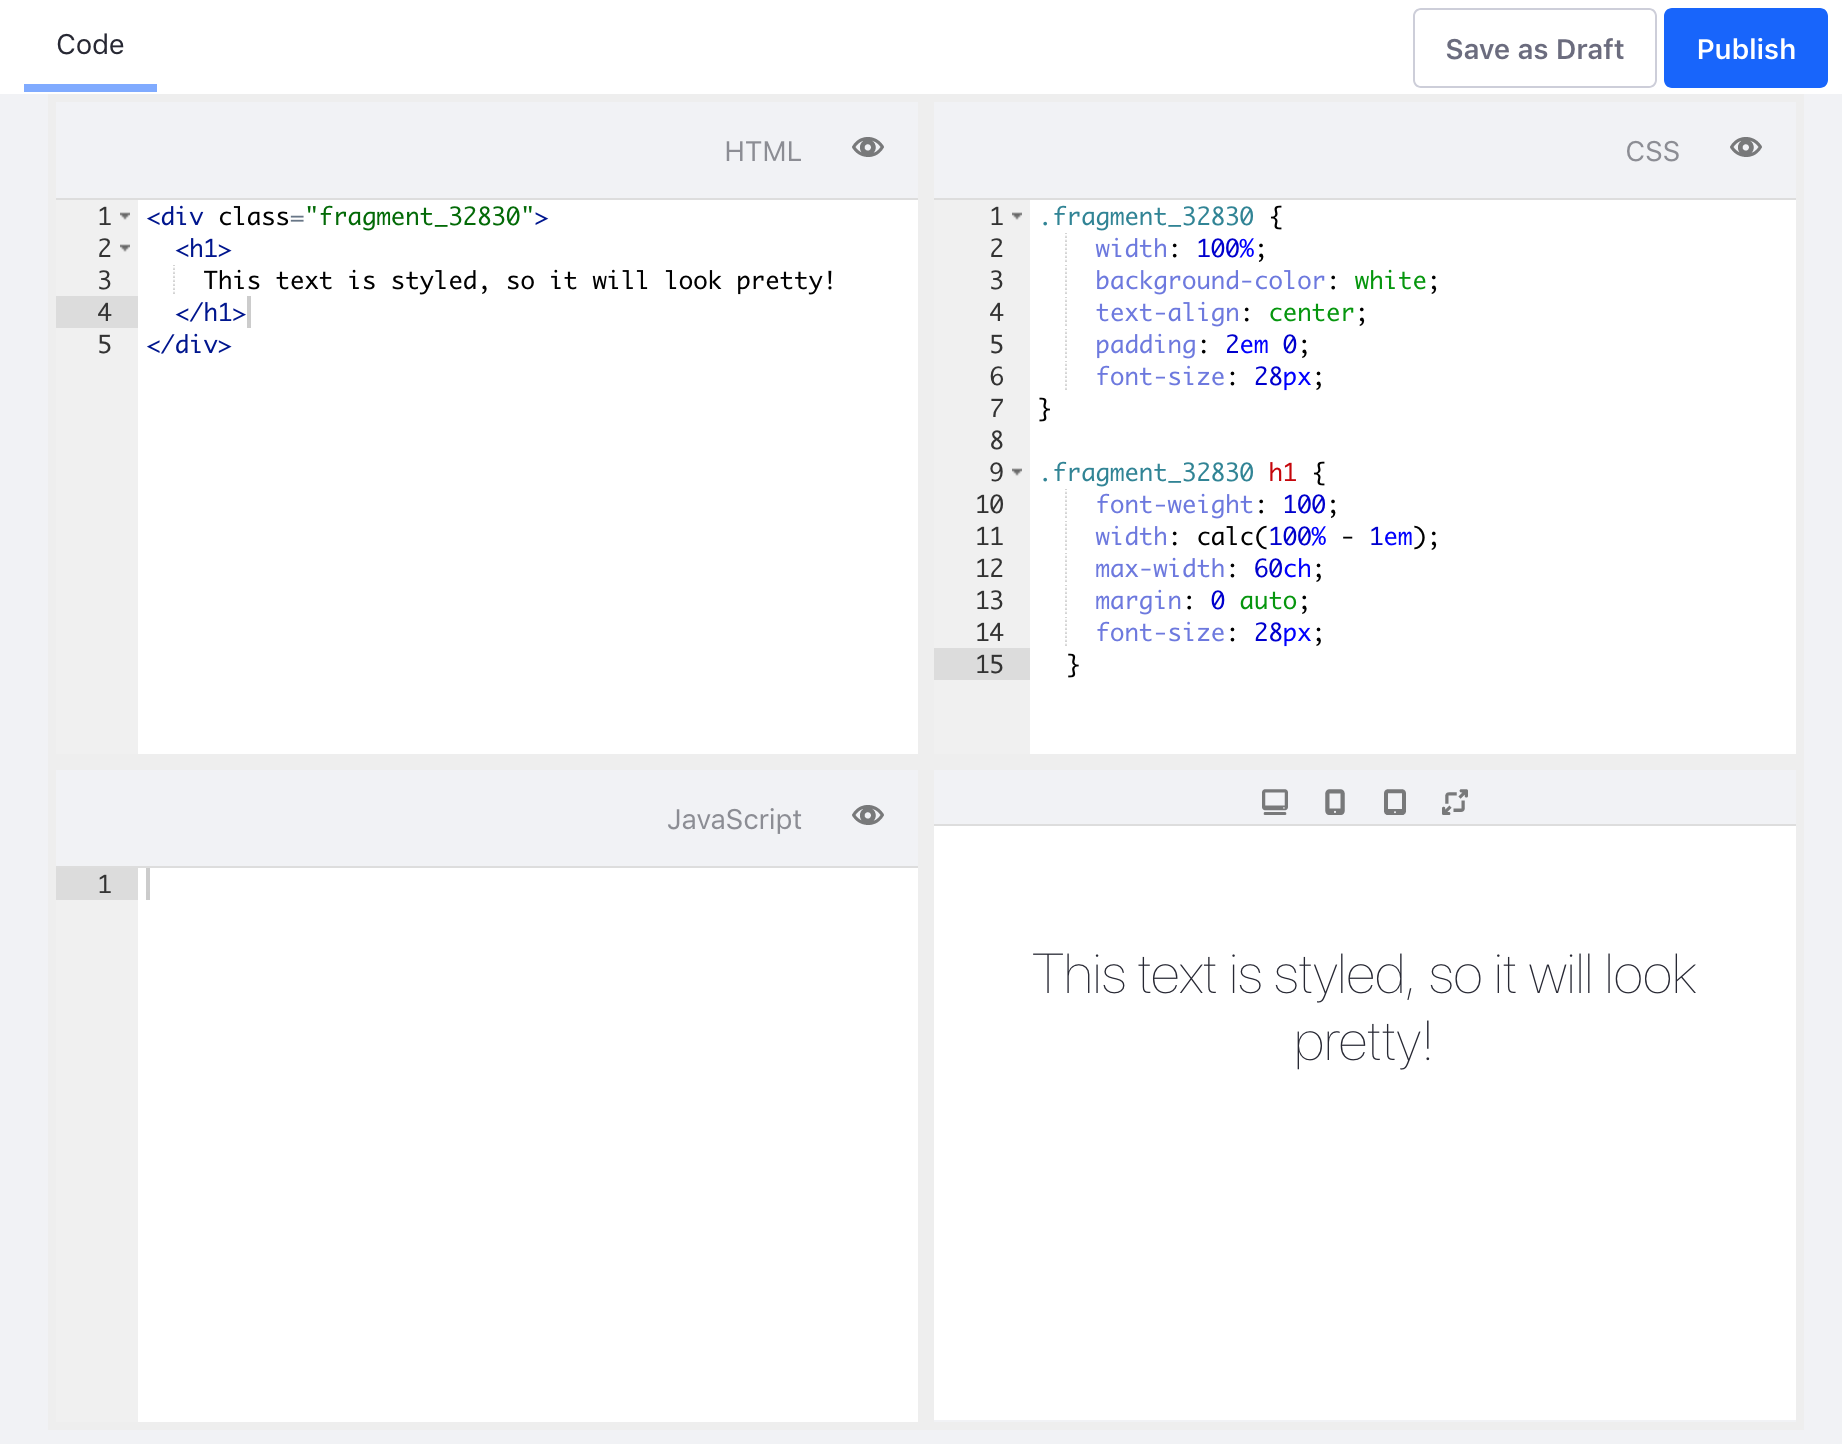 Figure 1: The Fragment editor with HTML and CSS code and a live preview.